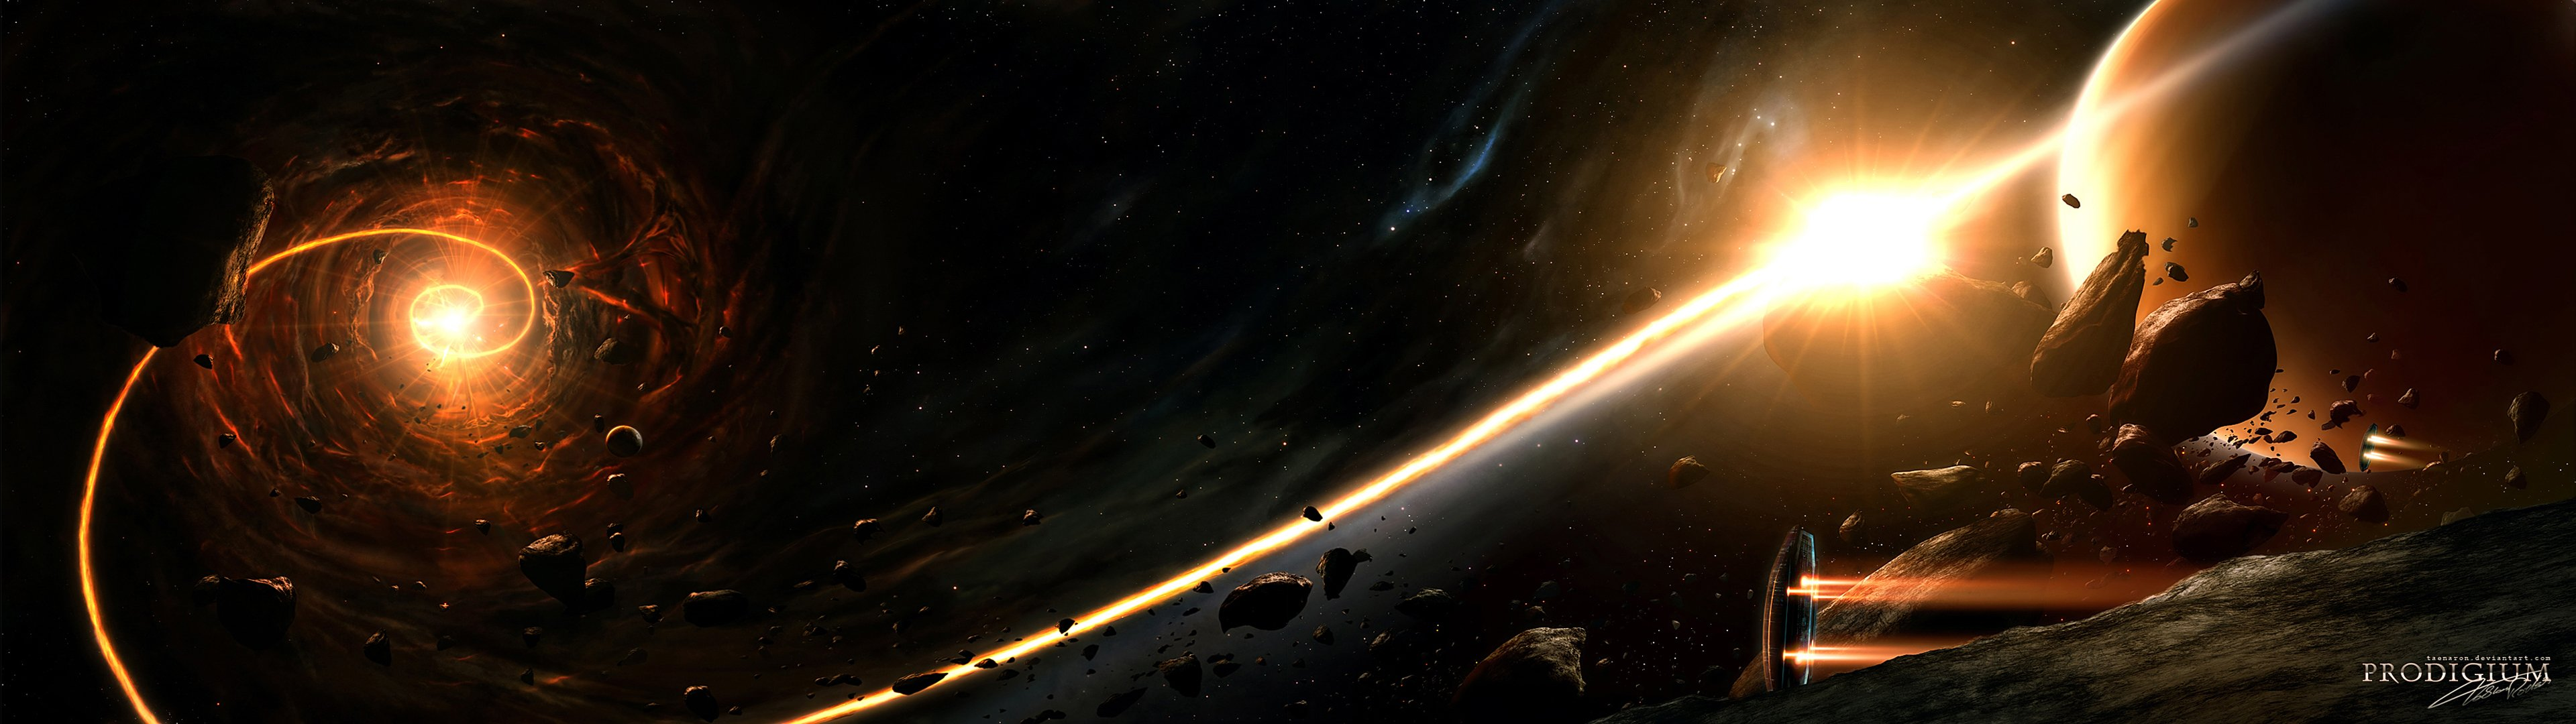 Space Wallpaper 3840x1080